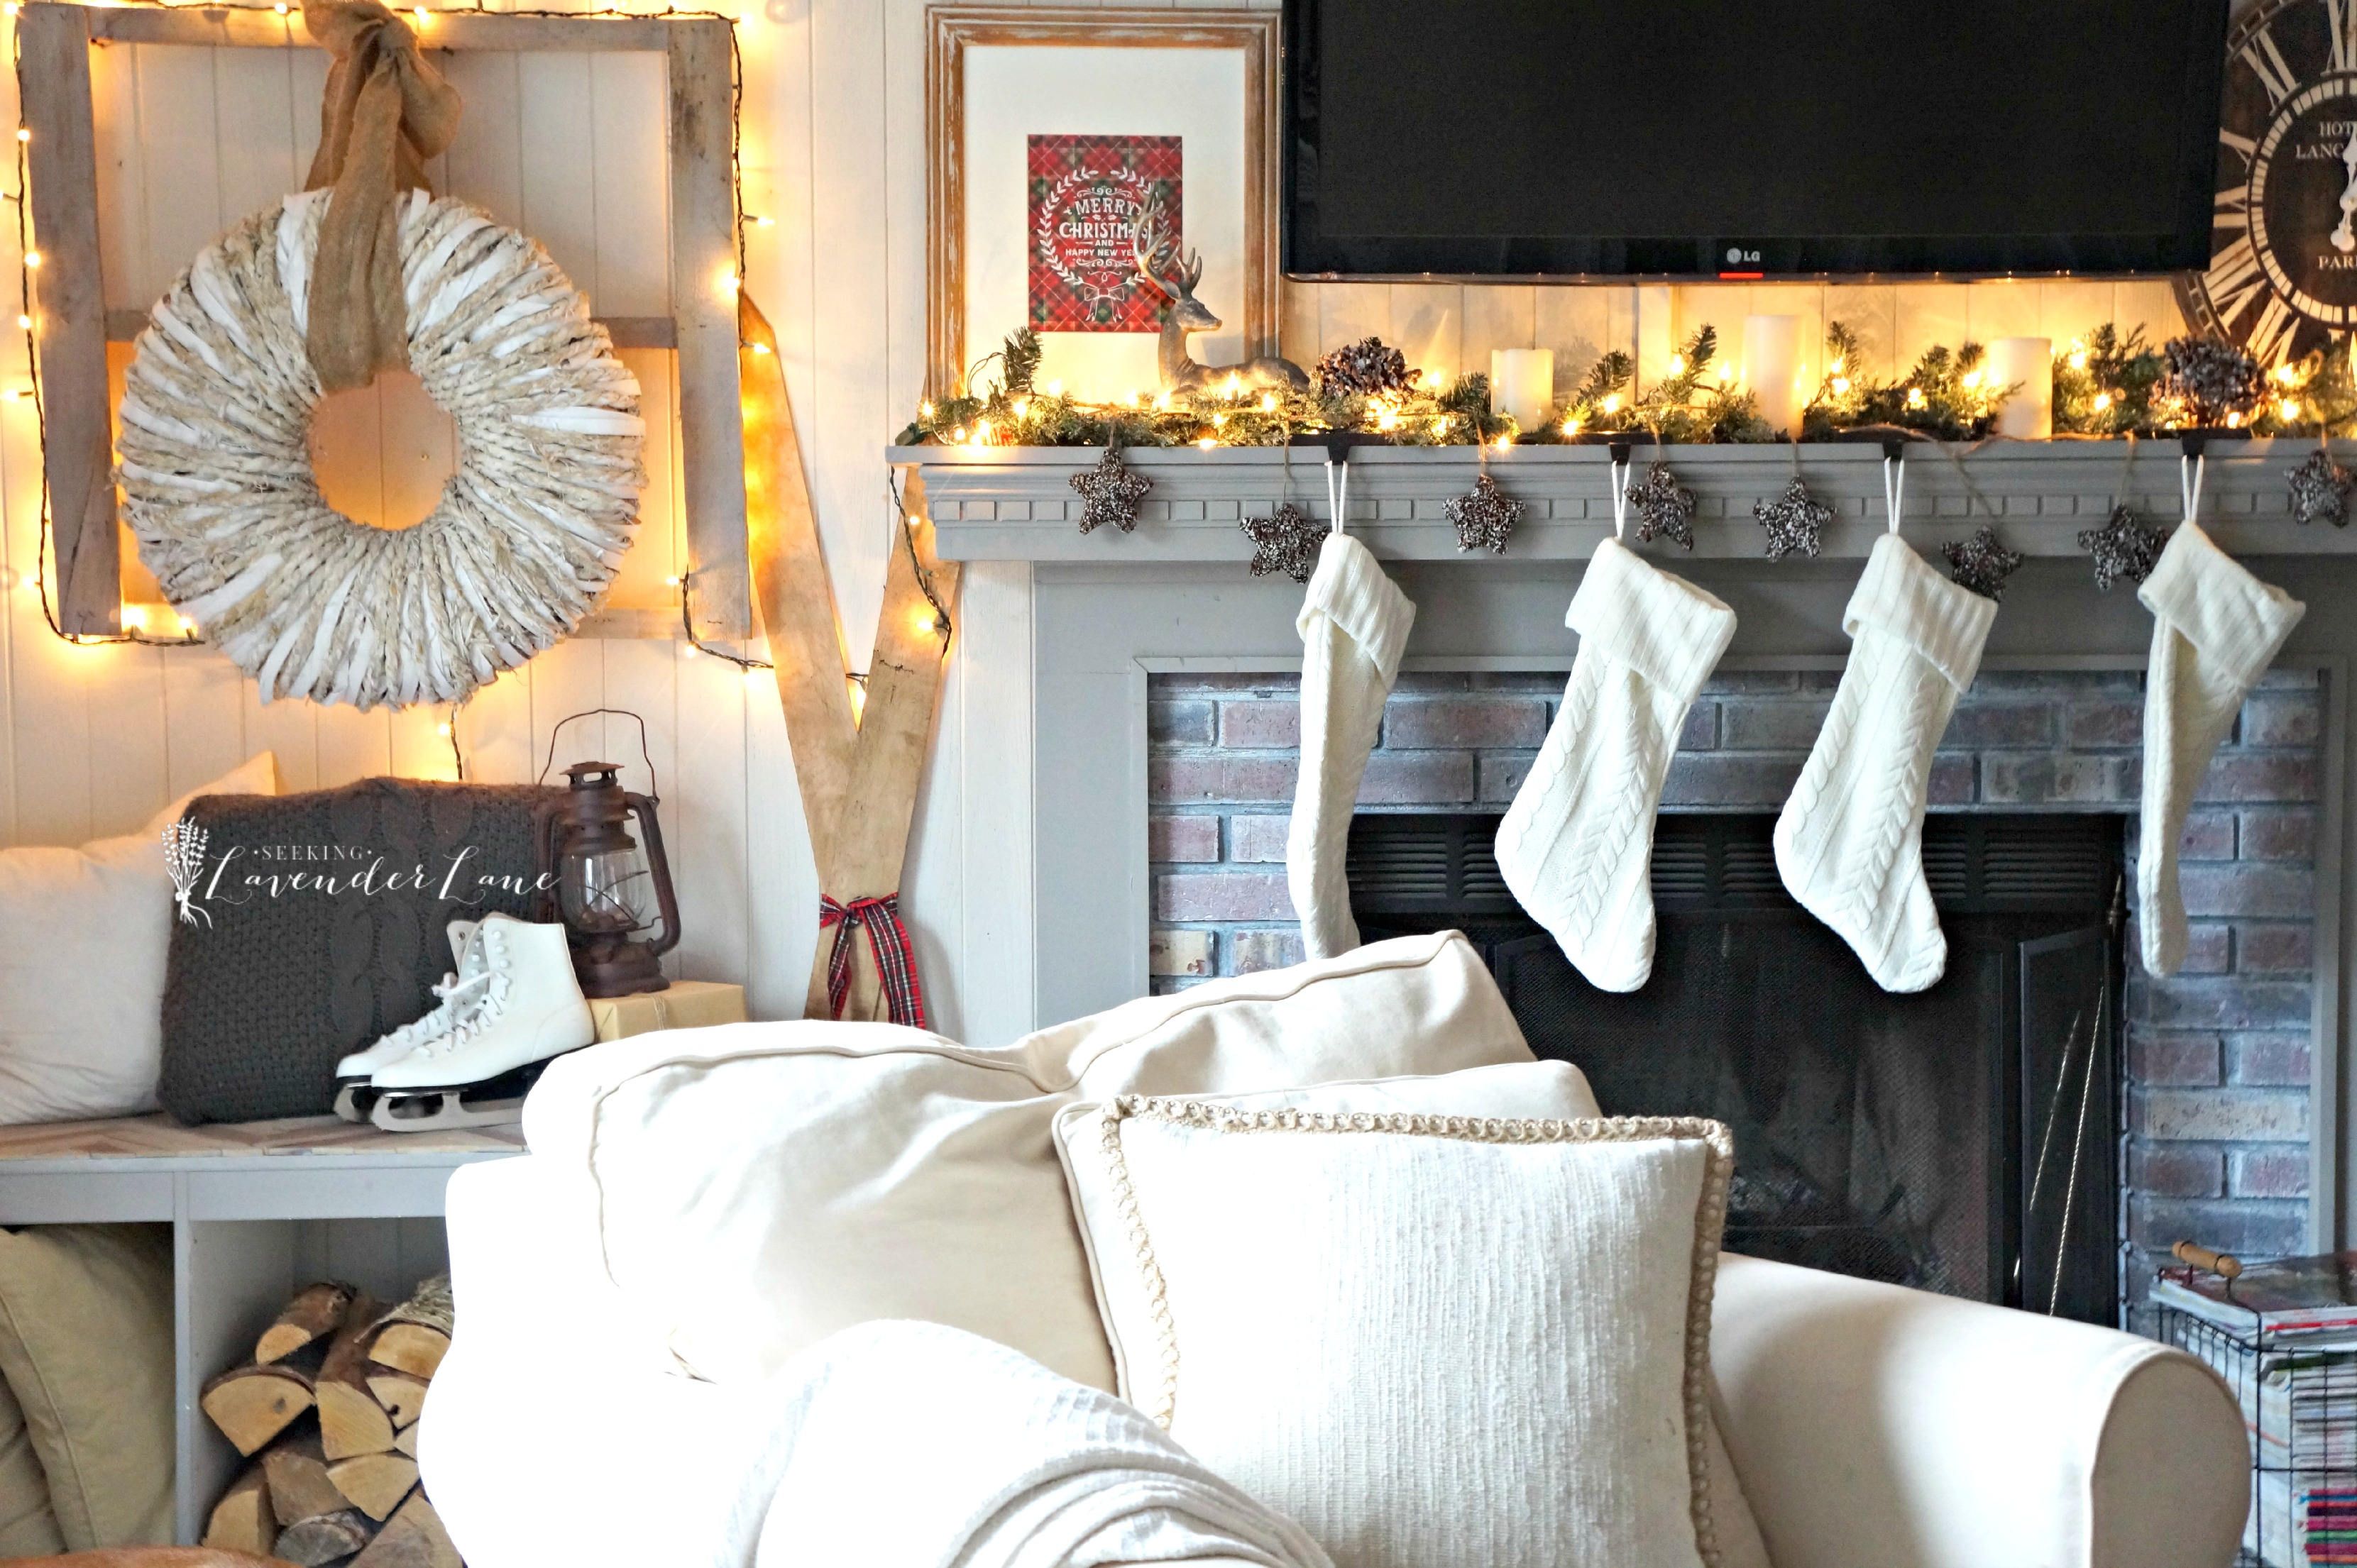 Farmhouse Christmas Home Tour with Seeking Lavender Lane Seeking